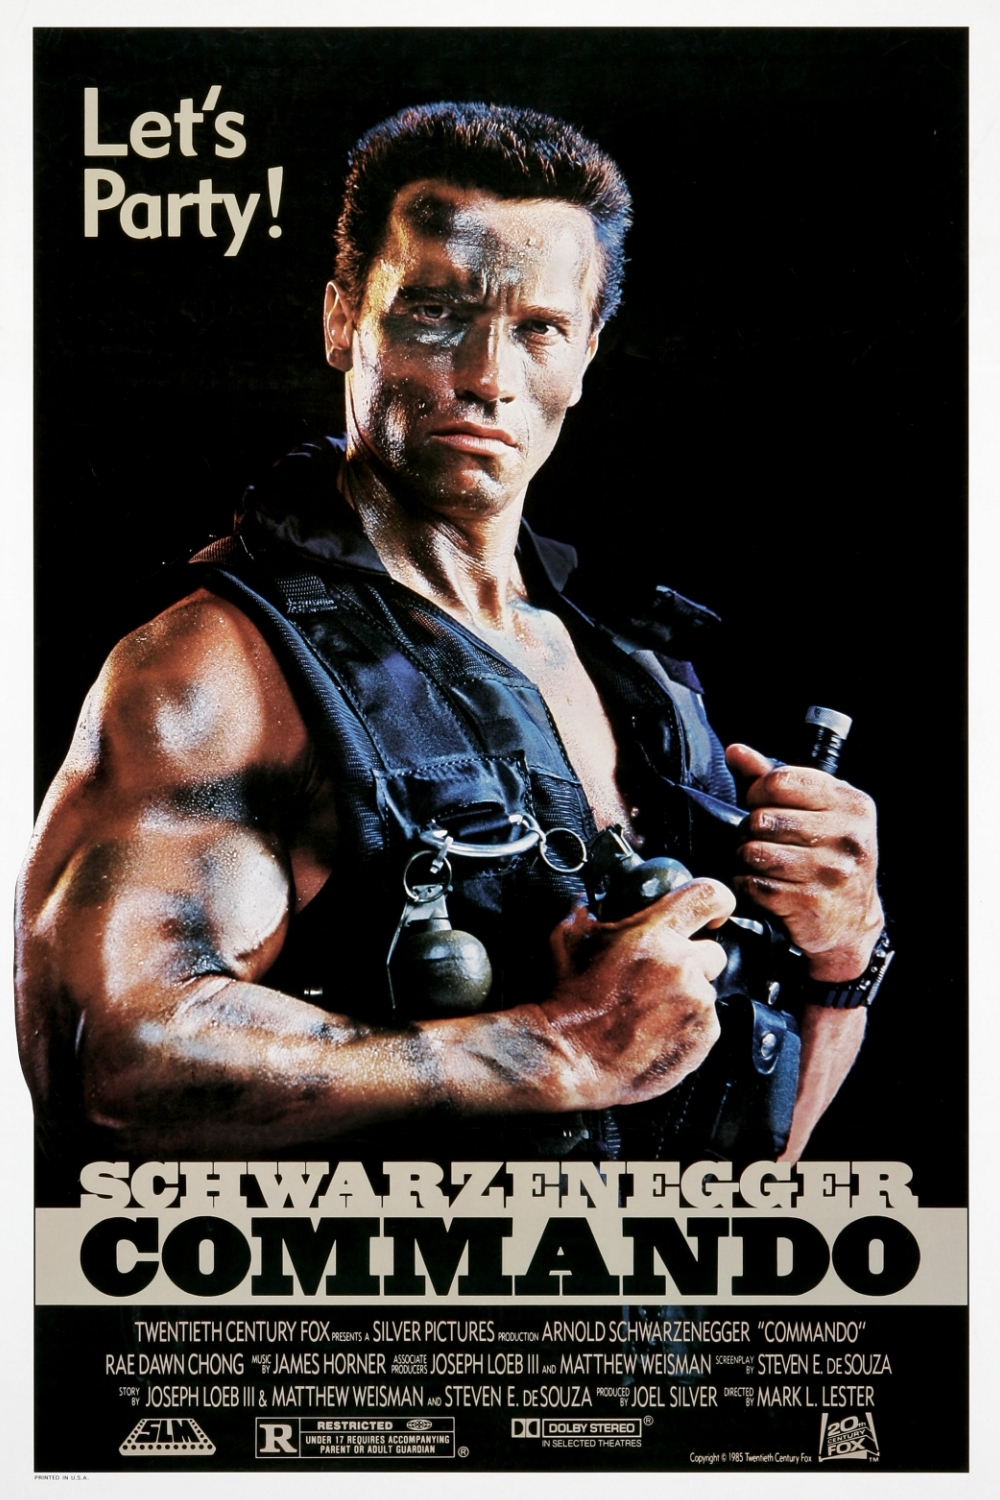 Poster Straight to Video XL: Arnold Schwarzenegger